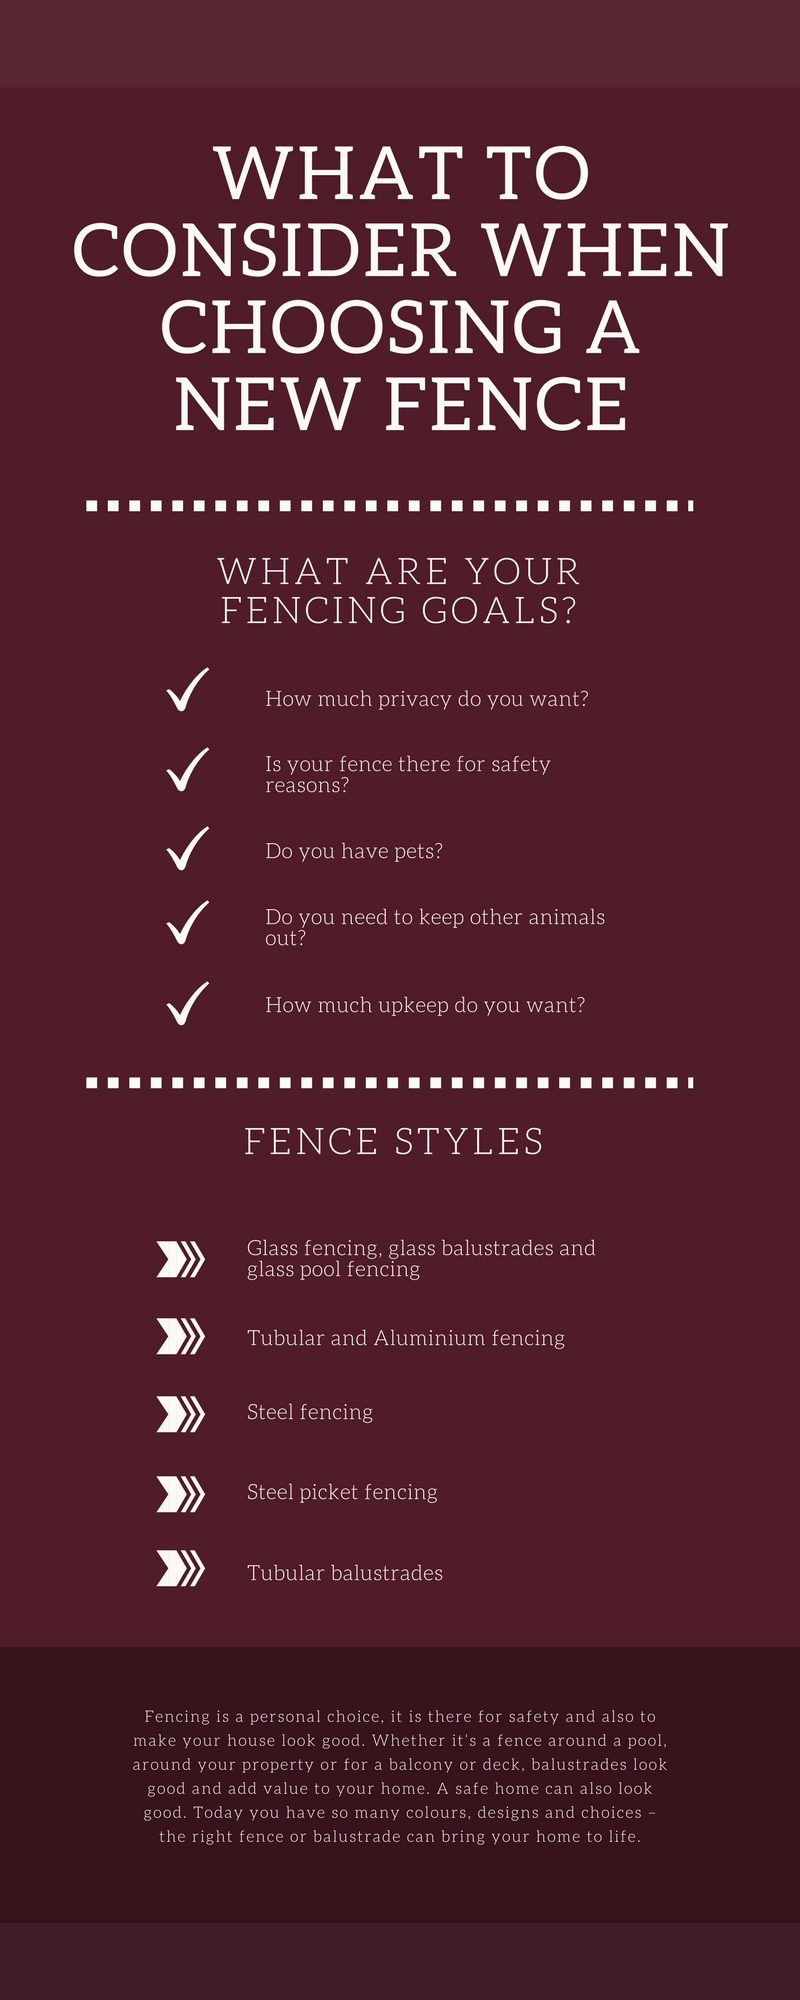 What You Need to Consider When Choosing a Fence